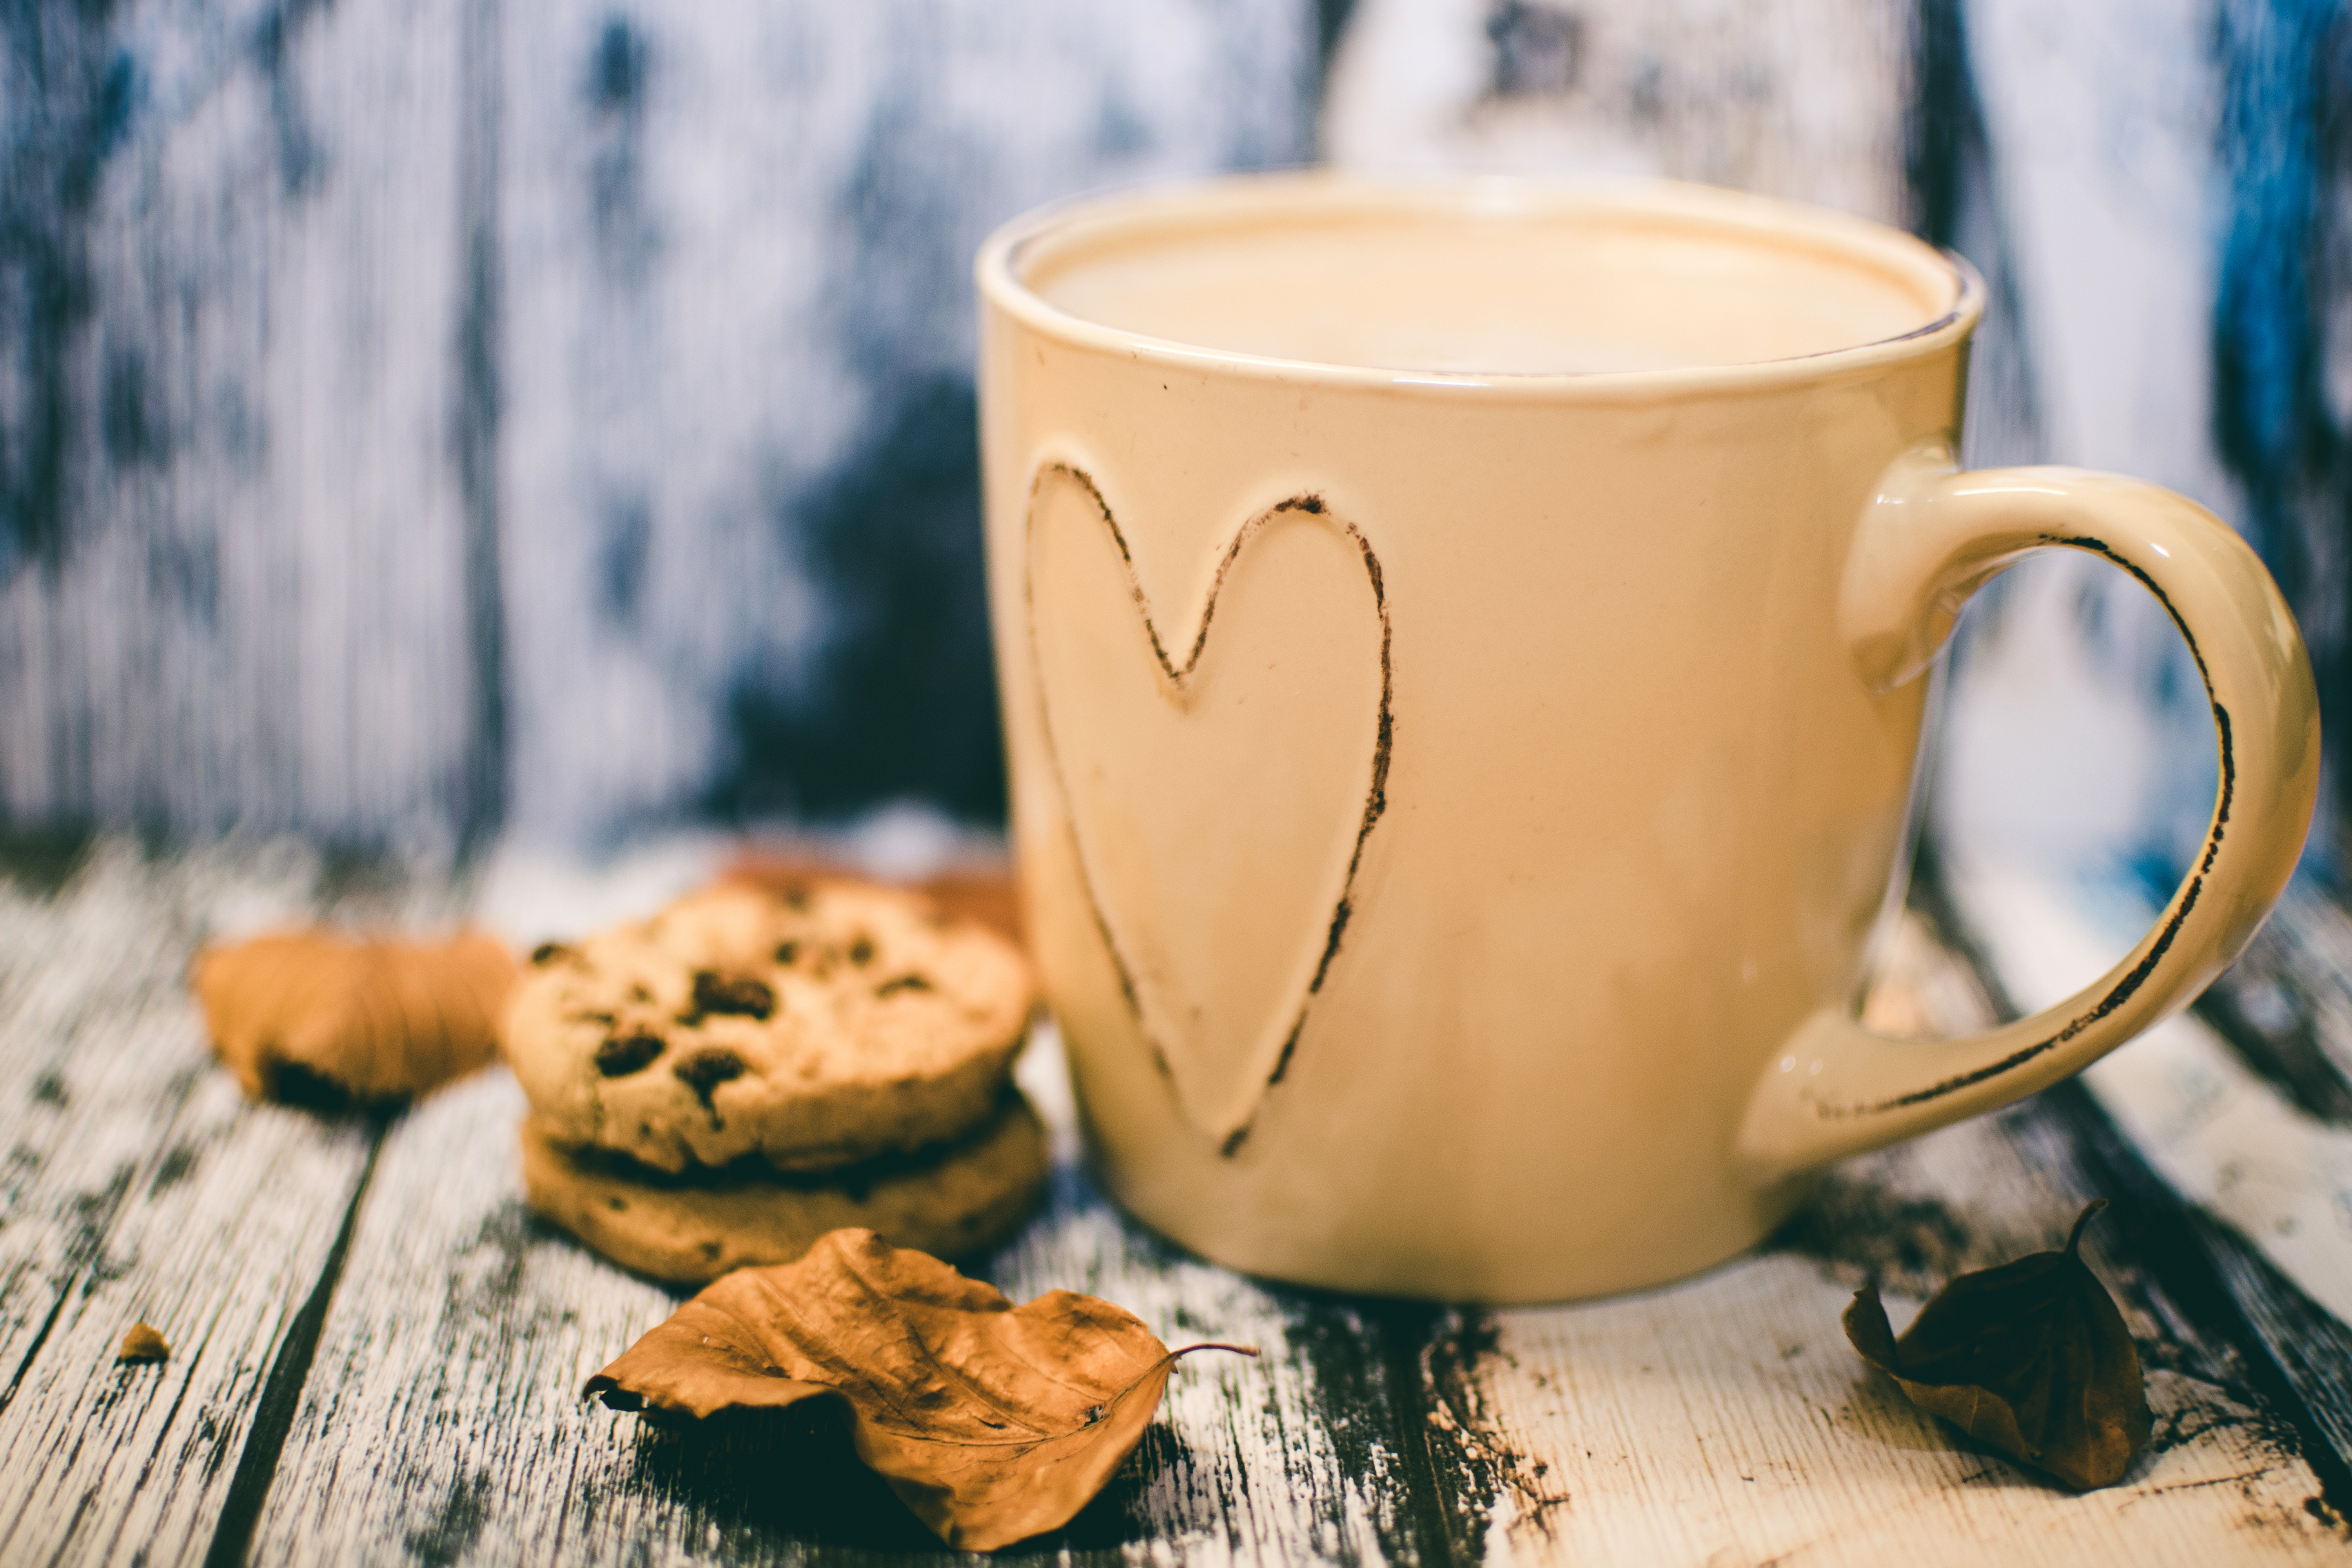 Cookie Coffee Cups Beige Ceramic Heart Mug With Coffee Beside Cookie Food A Free